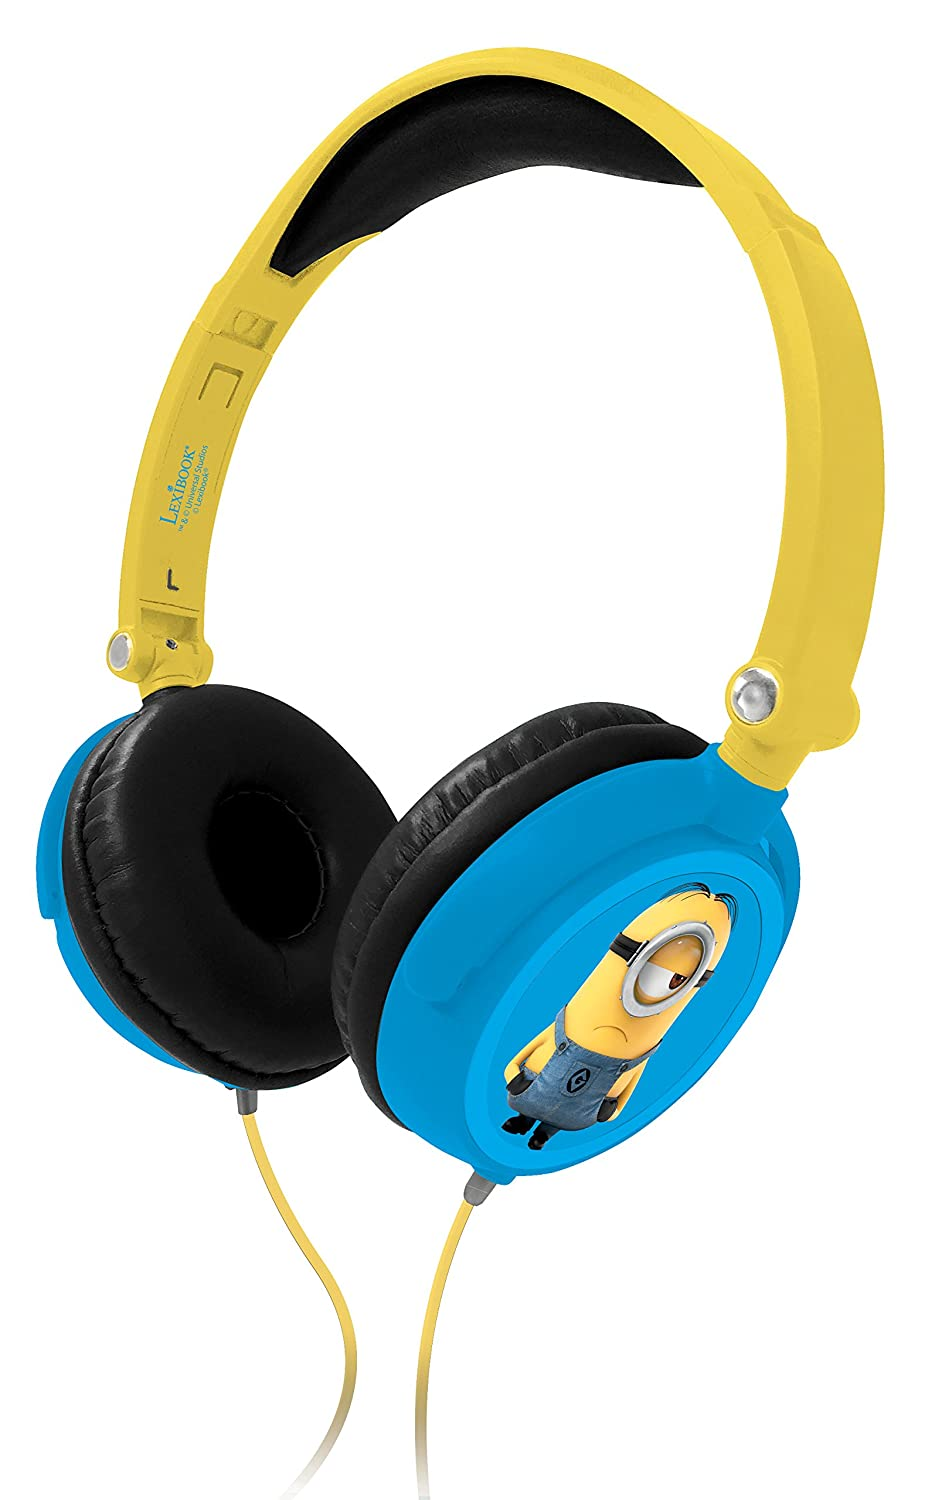 LEXIBOOK Universal Despicable Me 3 Minions Stereo Headphone, kids safe, foldable and adjustable, yellow/black, HP010DES Lowepro